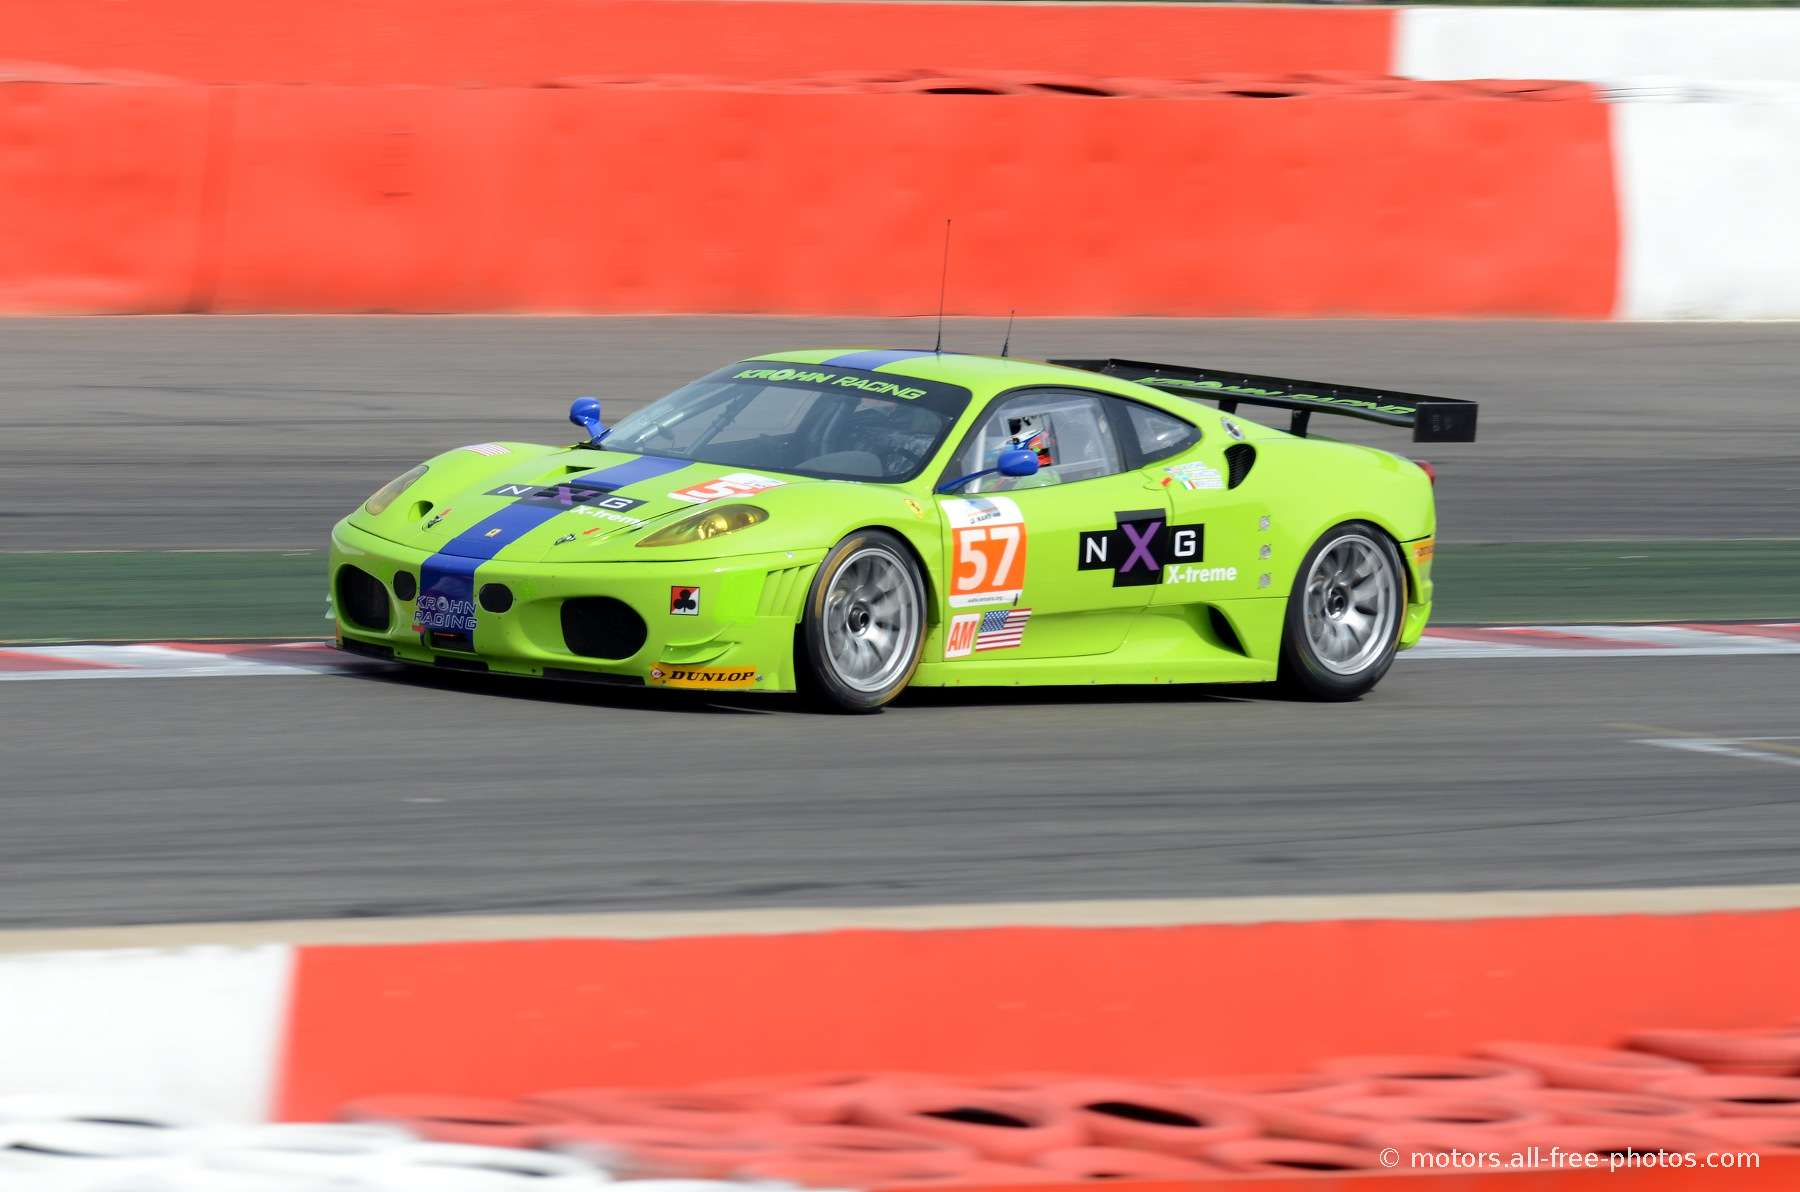 Ferrari F430 - Team Krohn Racing